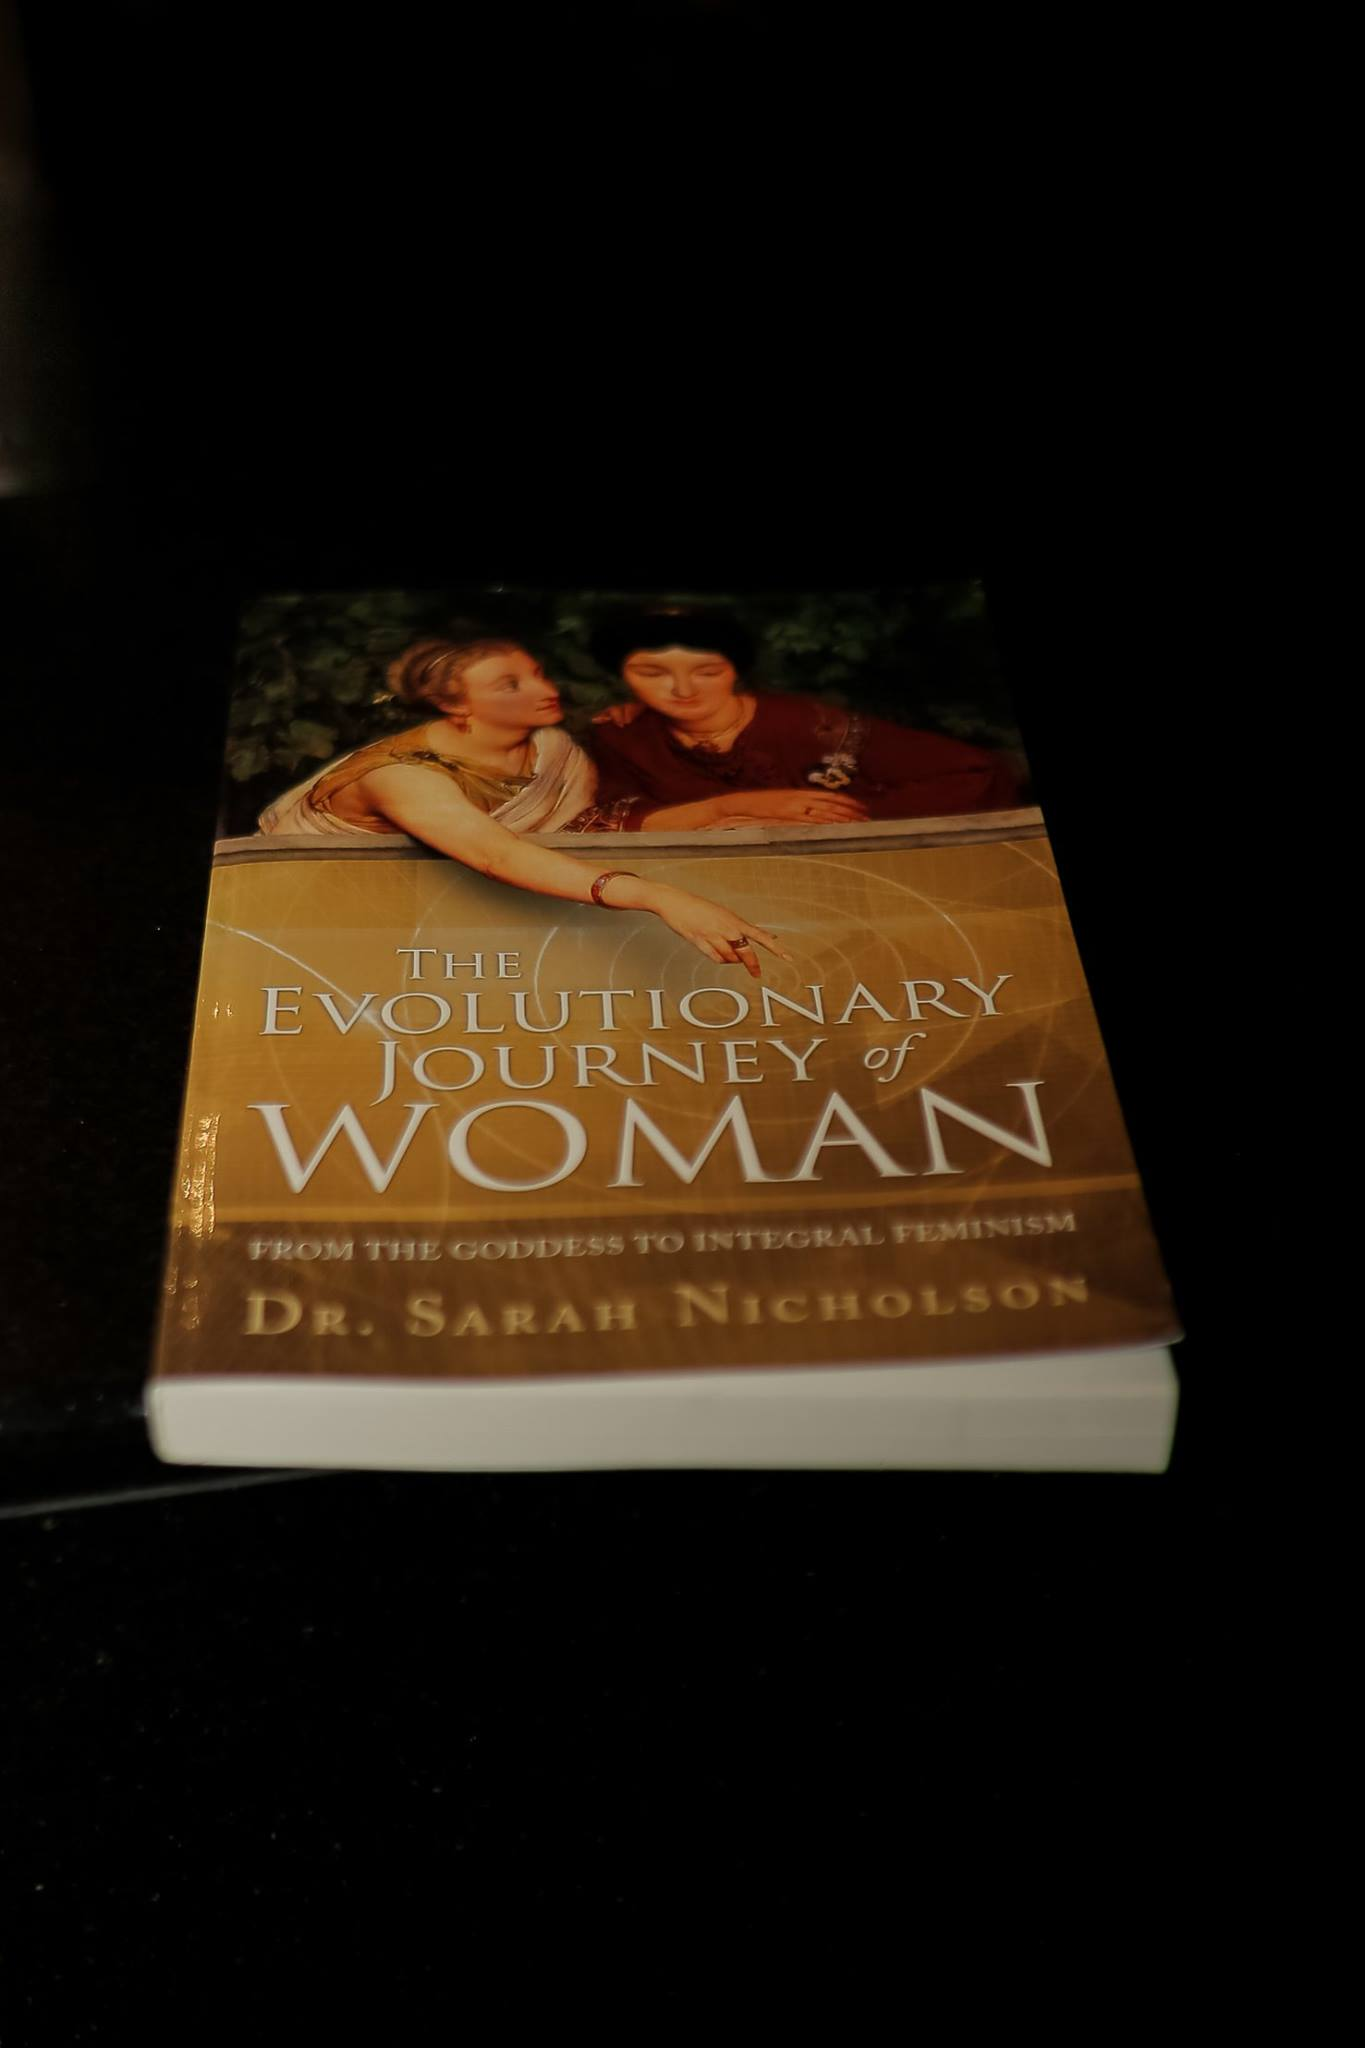 Thank you to creative mama, writer and academic Sass Nicholson who generously donated a copy of her book, The Evolutionary Journey of Woman: From the Goddess to Integral Feminism for our raffle